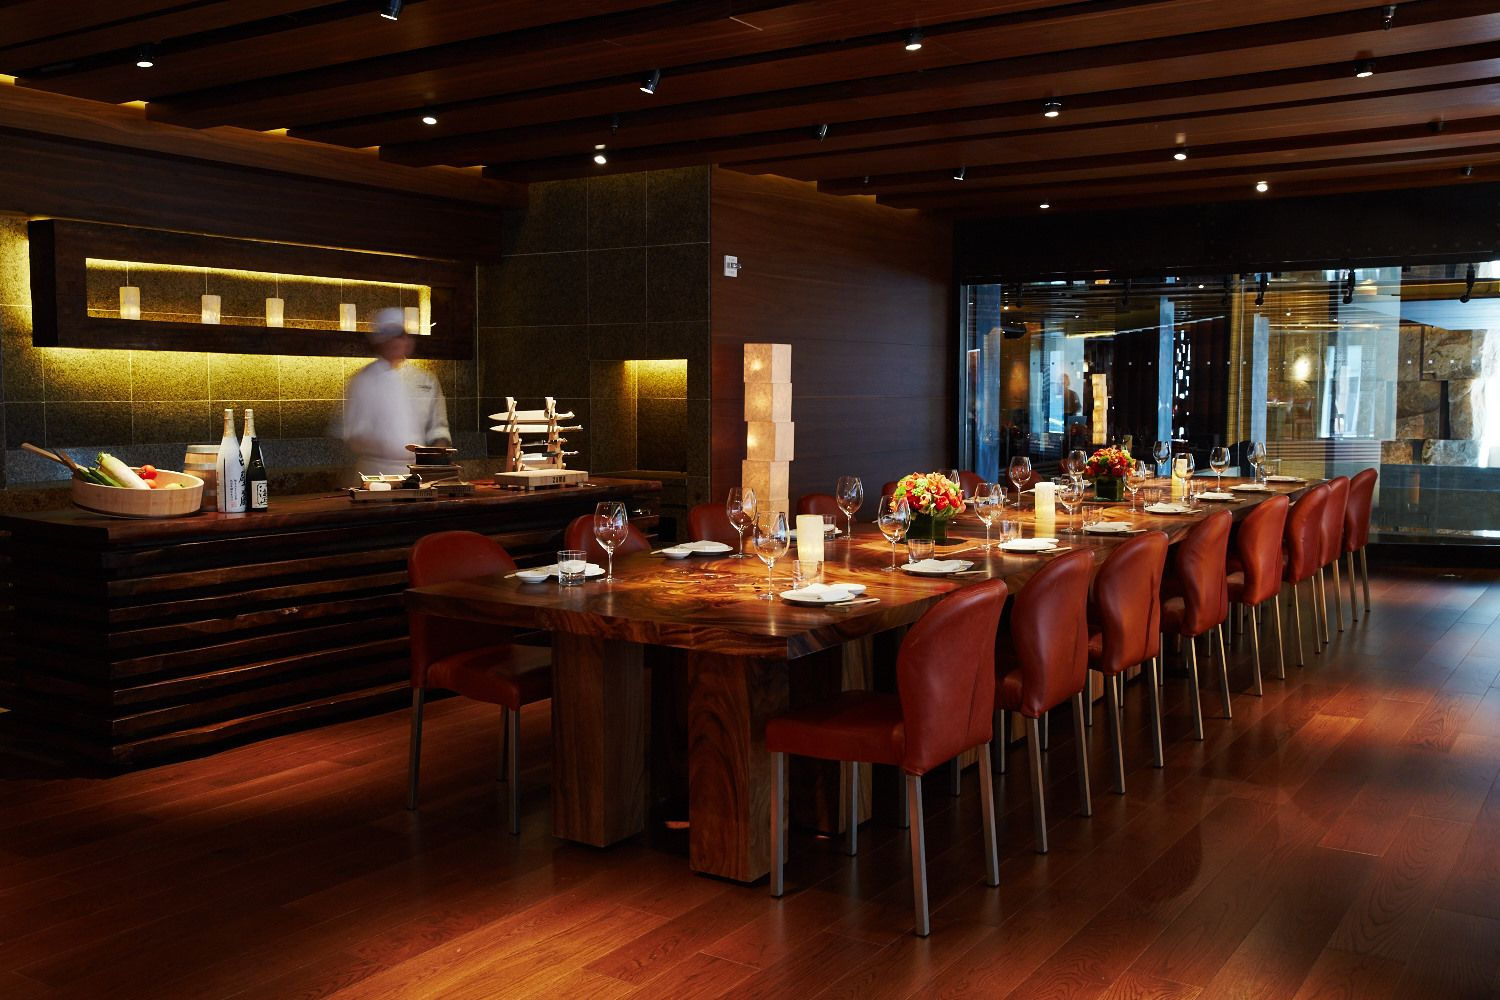 Merveilleux Find This Pin And More On 5 Best Private Dining Rooms In NYC By Bestvenues.